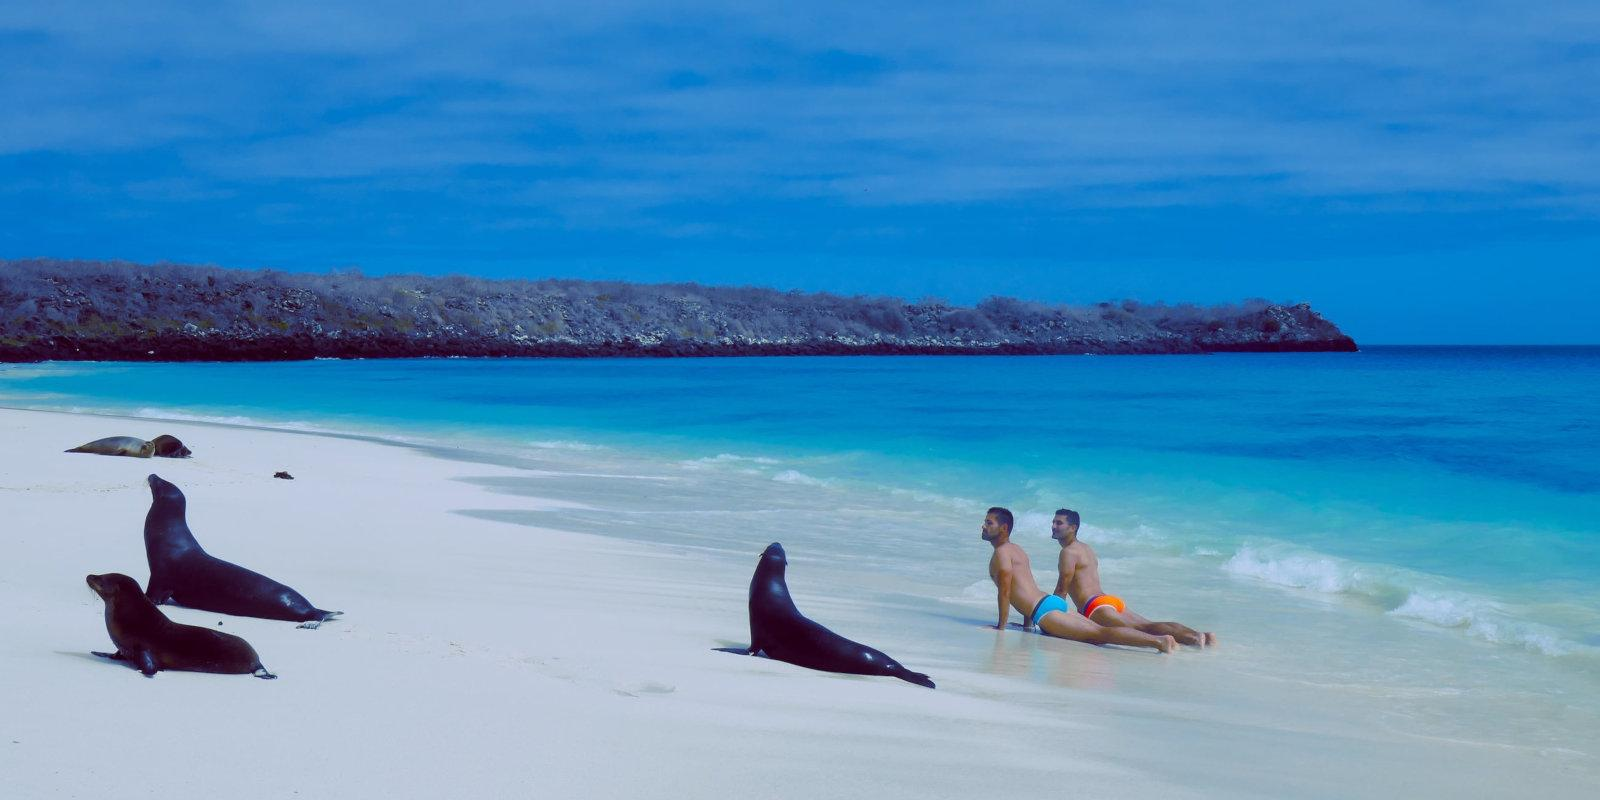 Adventurous gay travellers will love exploring the Galapagos Islands on an exclusive gay cruise